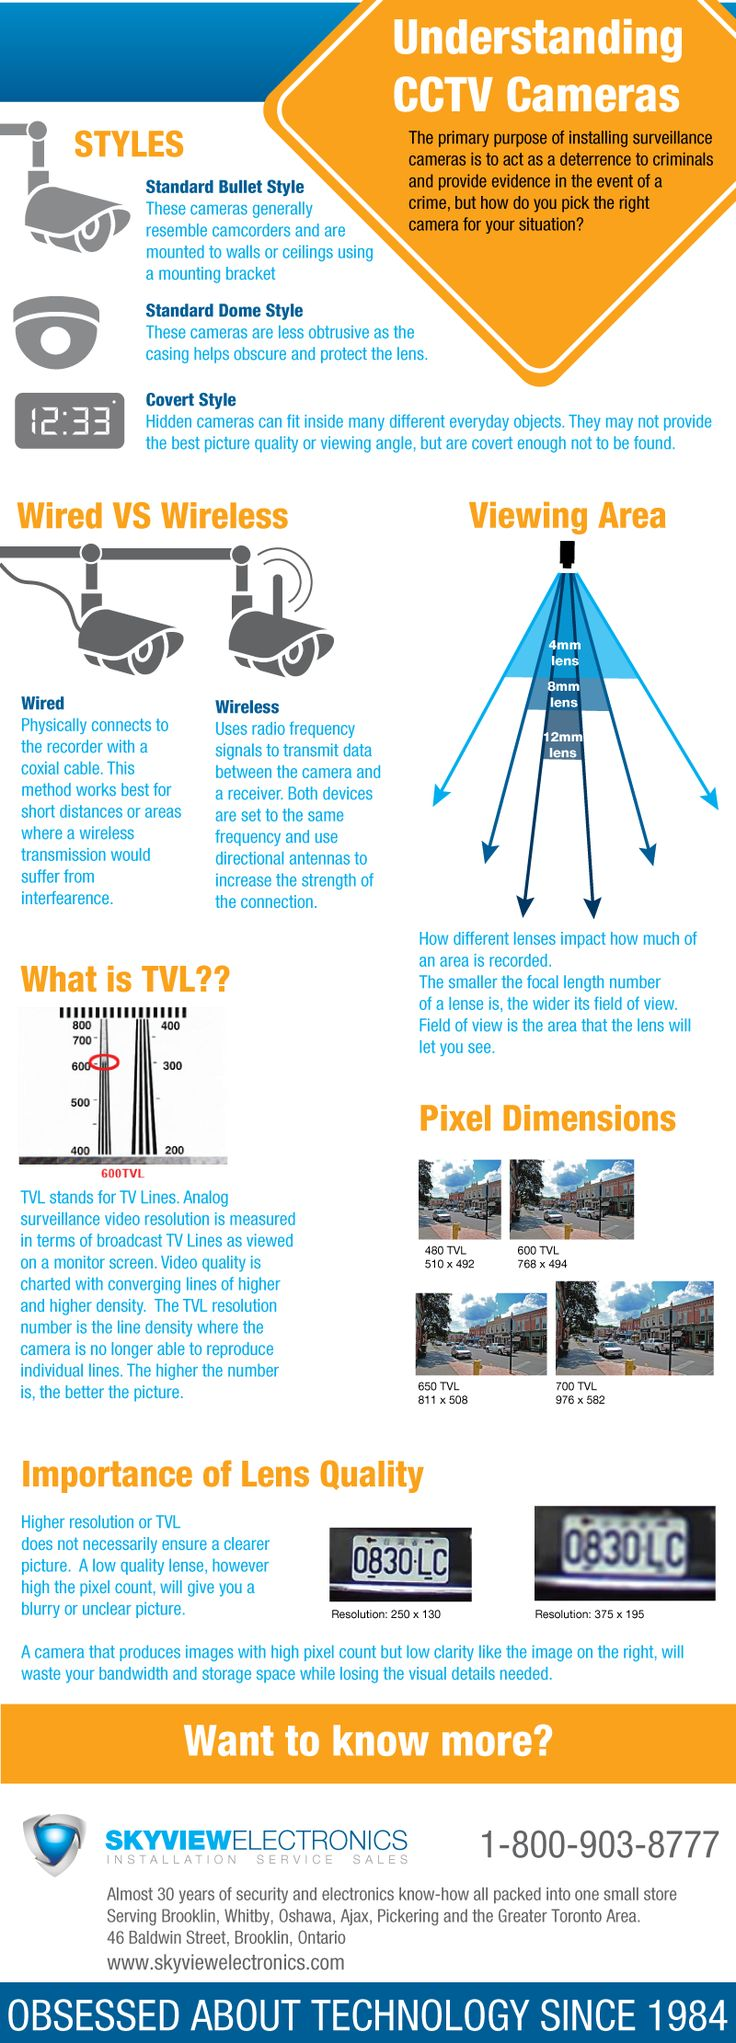 Understanding CCTV Cameras - Security Cameras - Infographic - explanation of types and terms